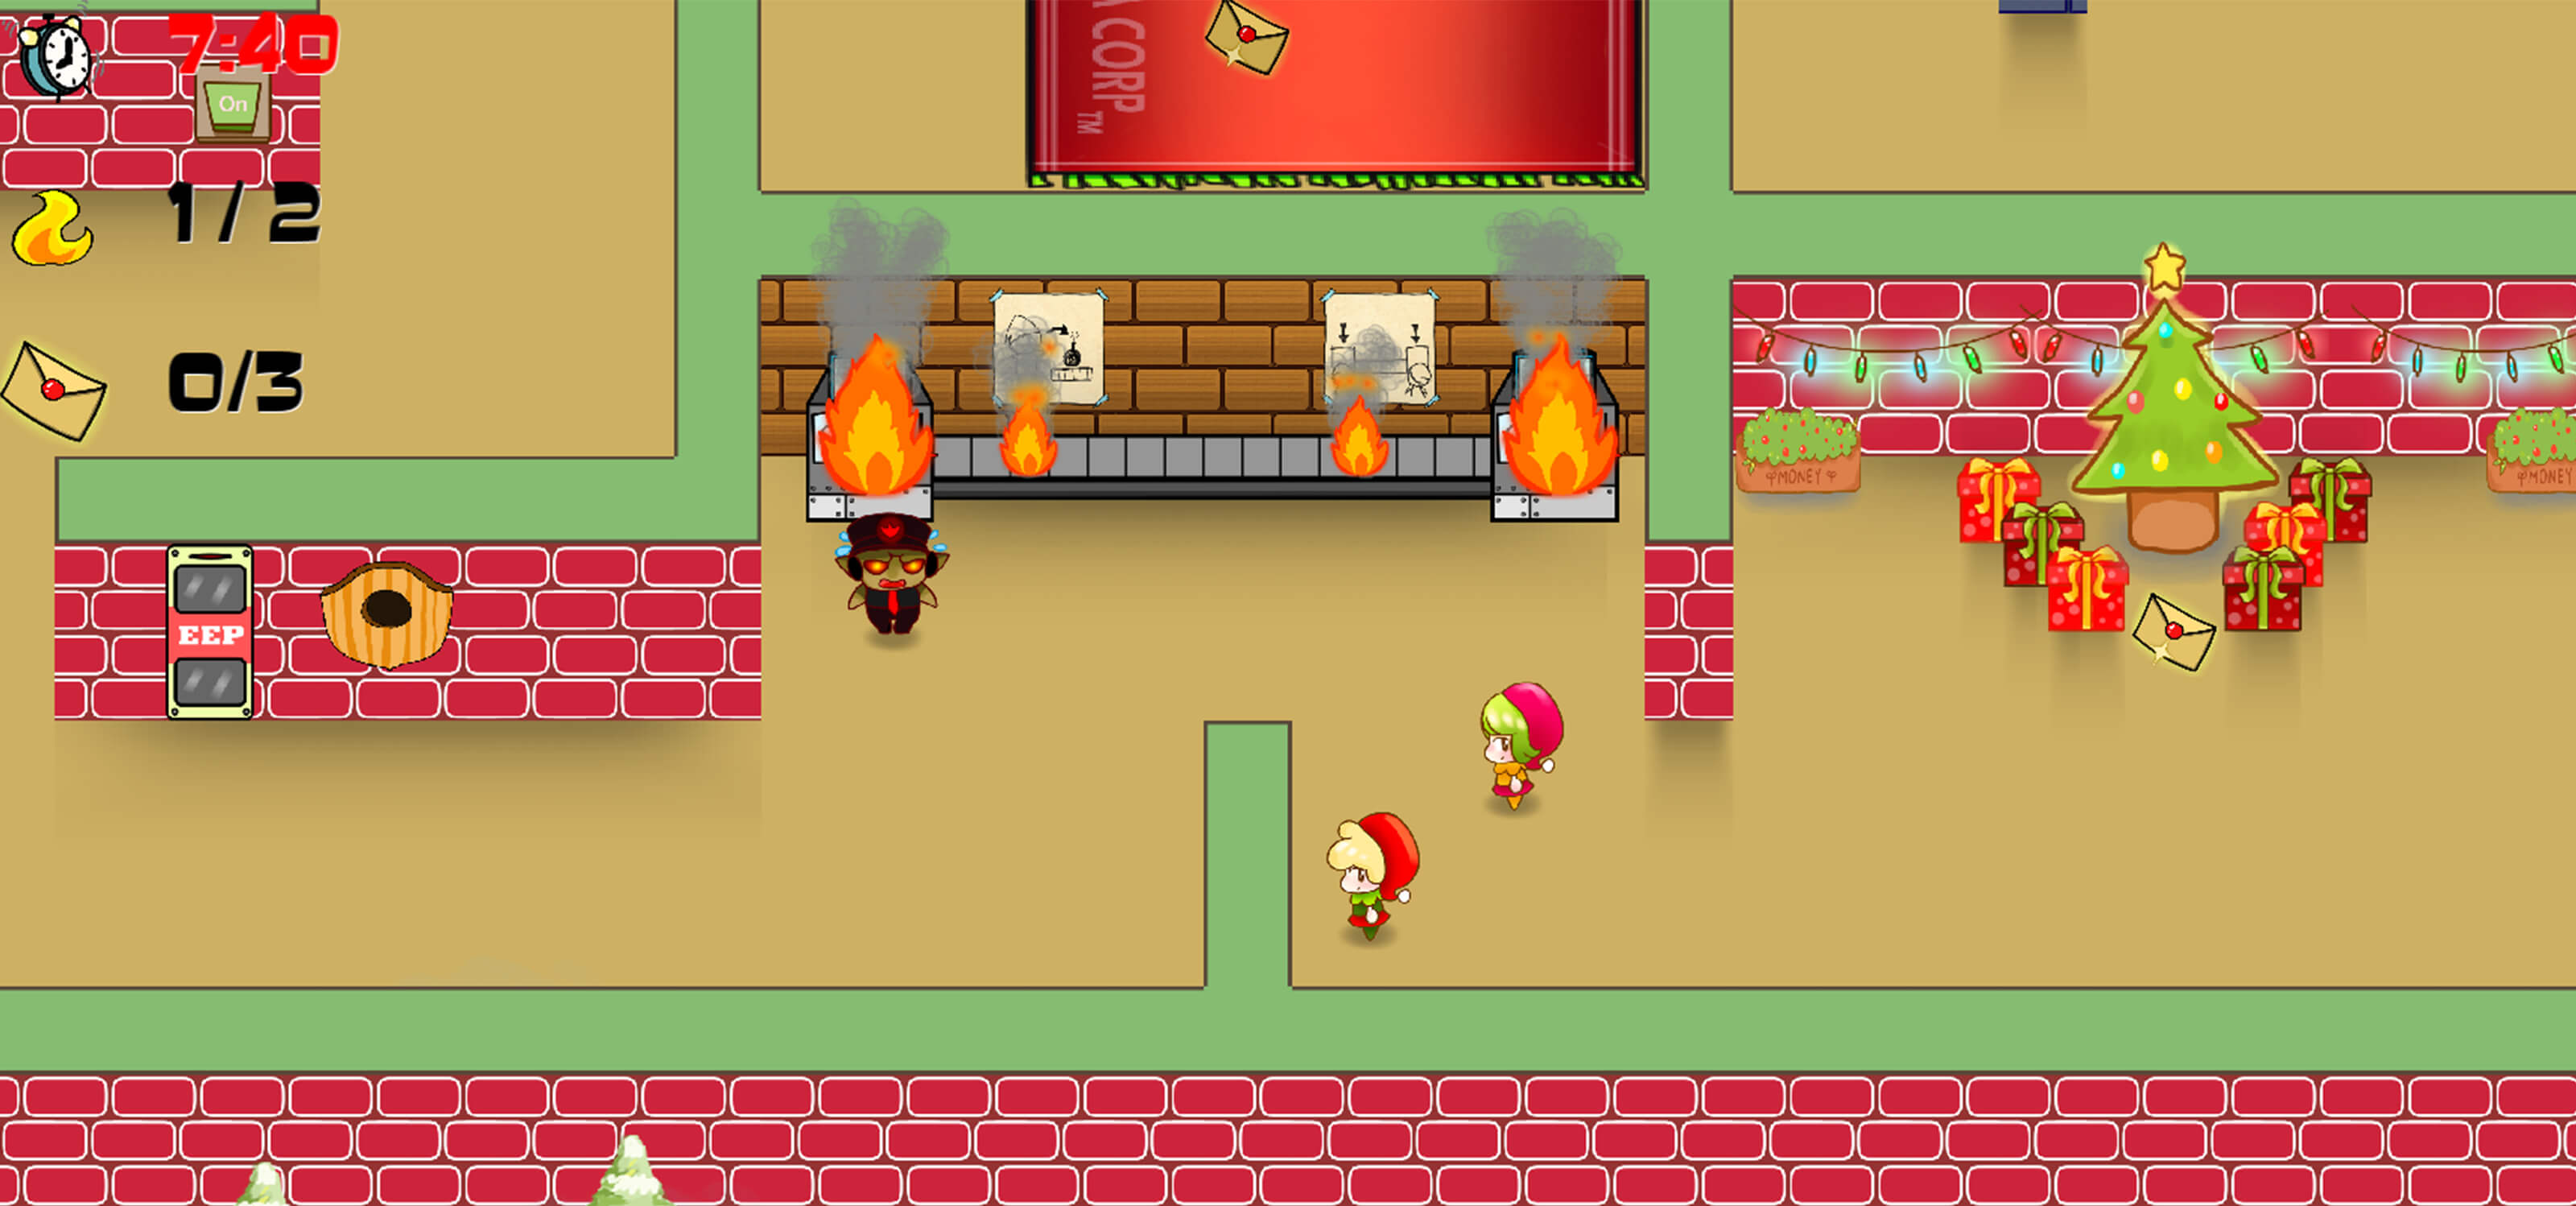 Screenshot from DigiPen (Singapore) student game Santa's Clause showing top-down view of an office/workshop with elves and reindeer employees.